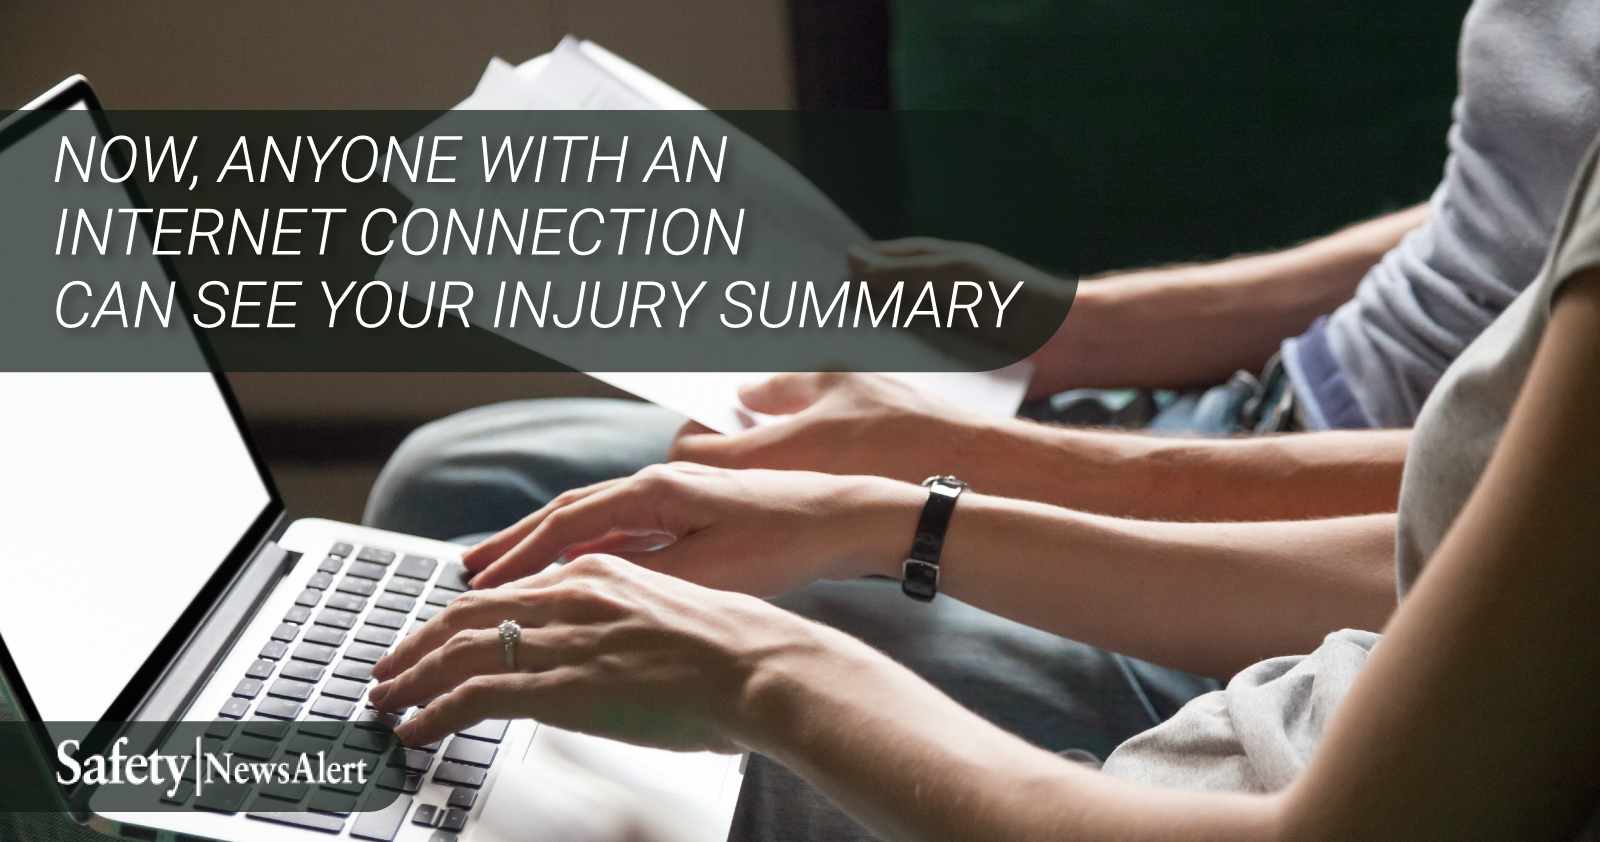 now anyone with an internet connection can see your injury summary